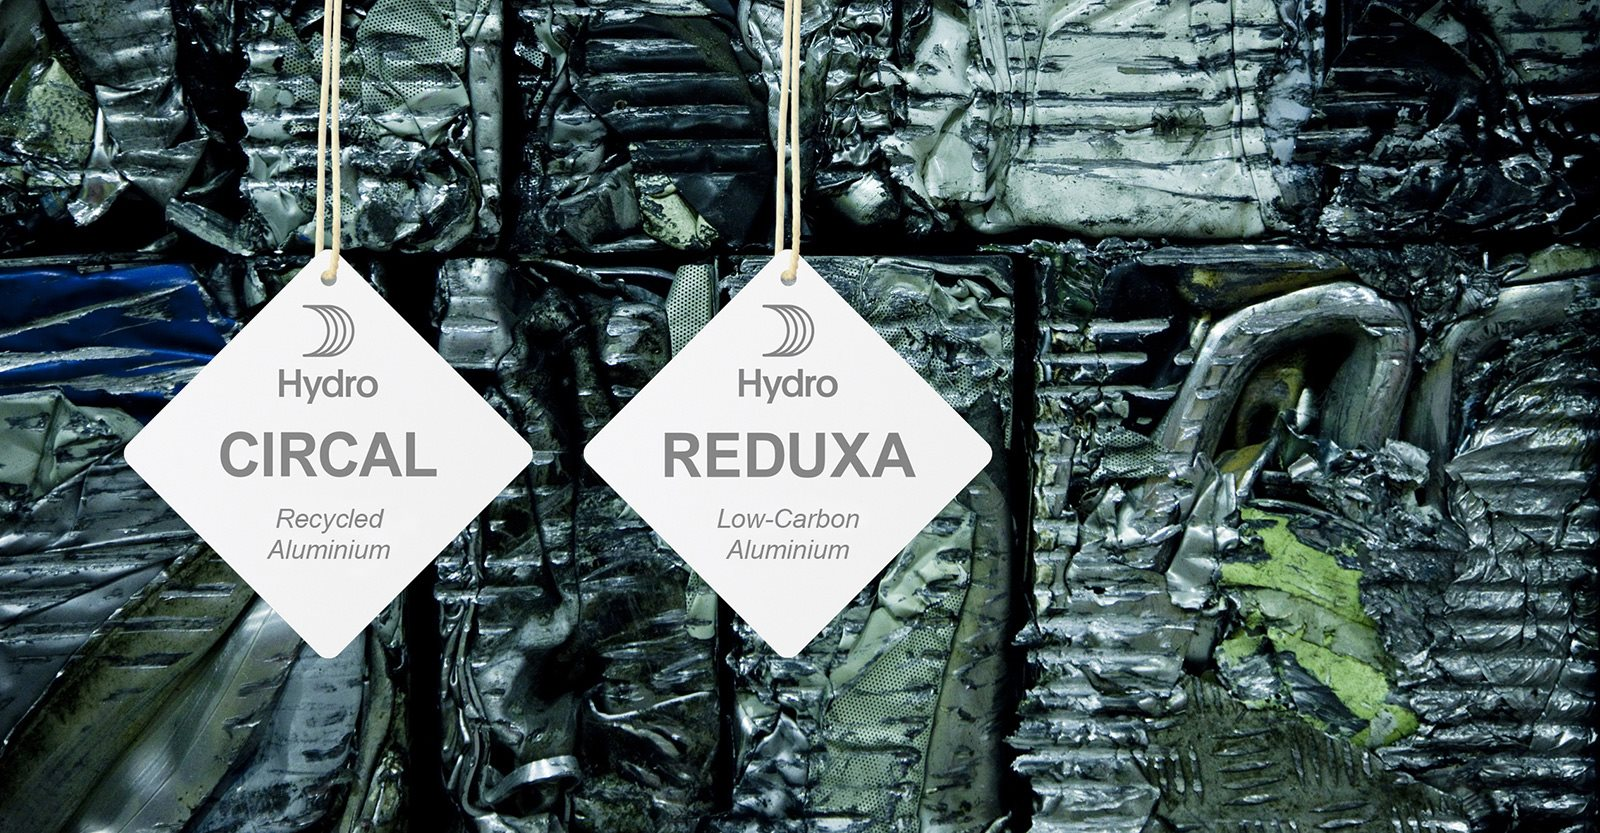 CIRCAL and REDUXA brands